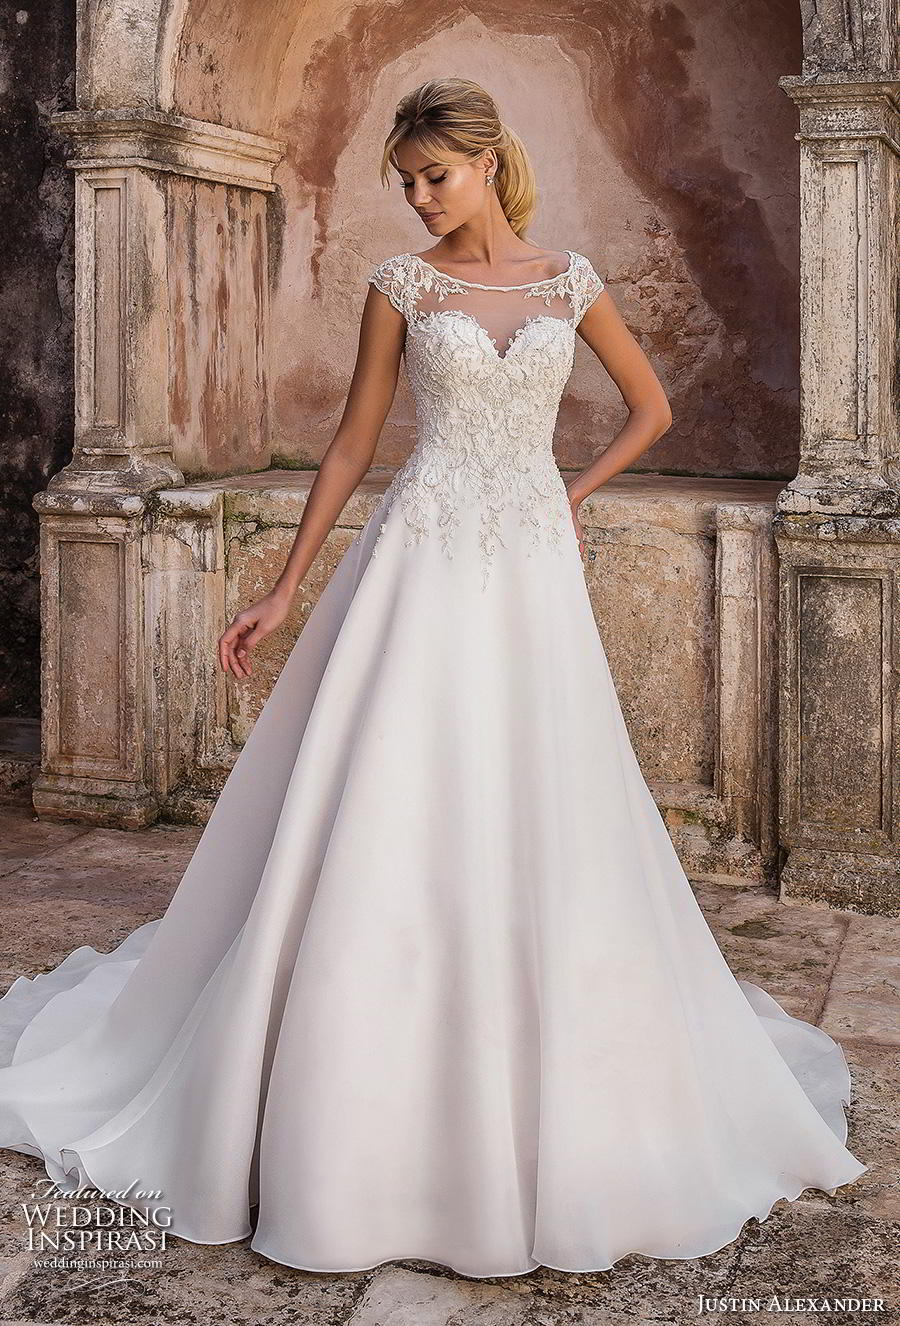 justin alexander spring 2019 bridal cap sleeves illusion bateau sweetheart neckline heavily embellished bodice classic romantic a line wedding dress sheer button back chapel train (12) mv